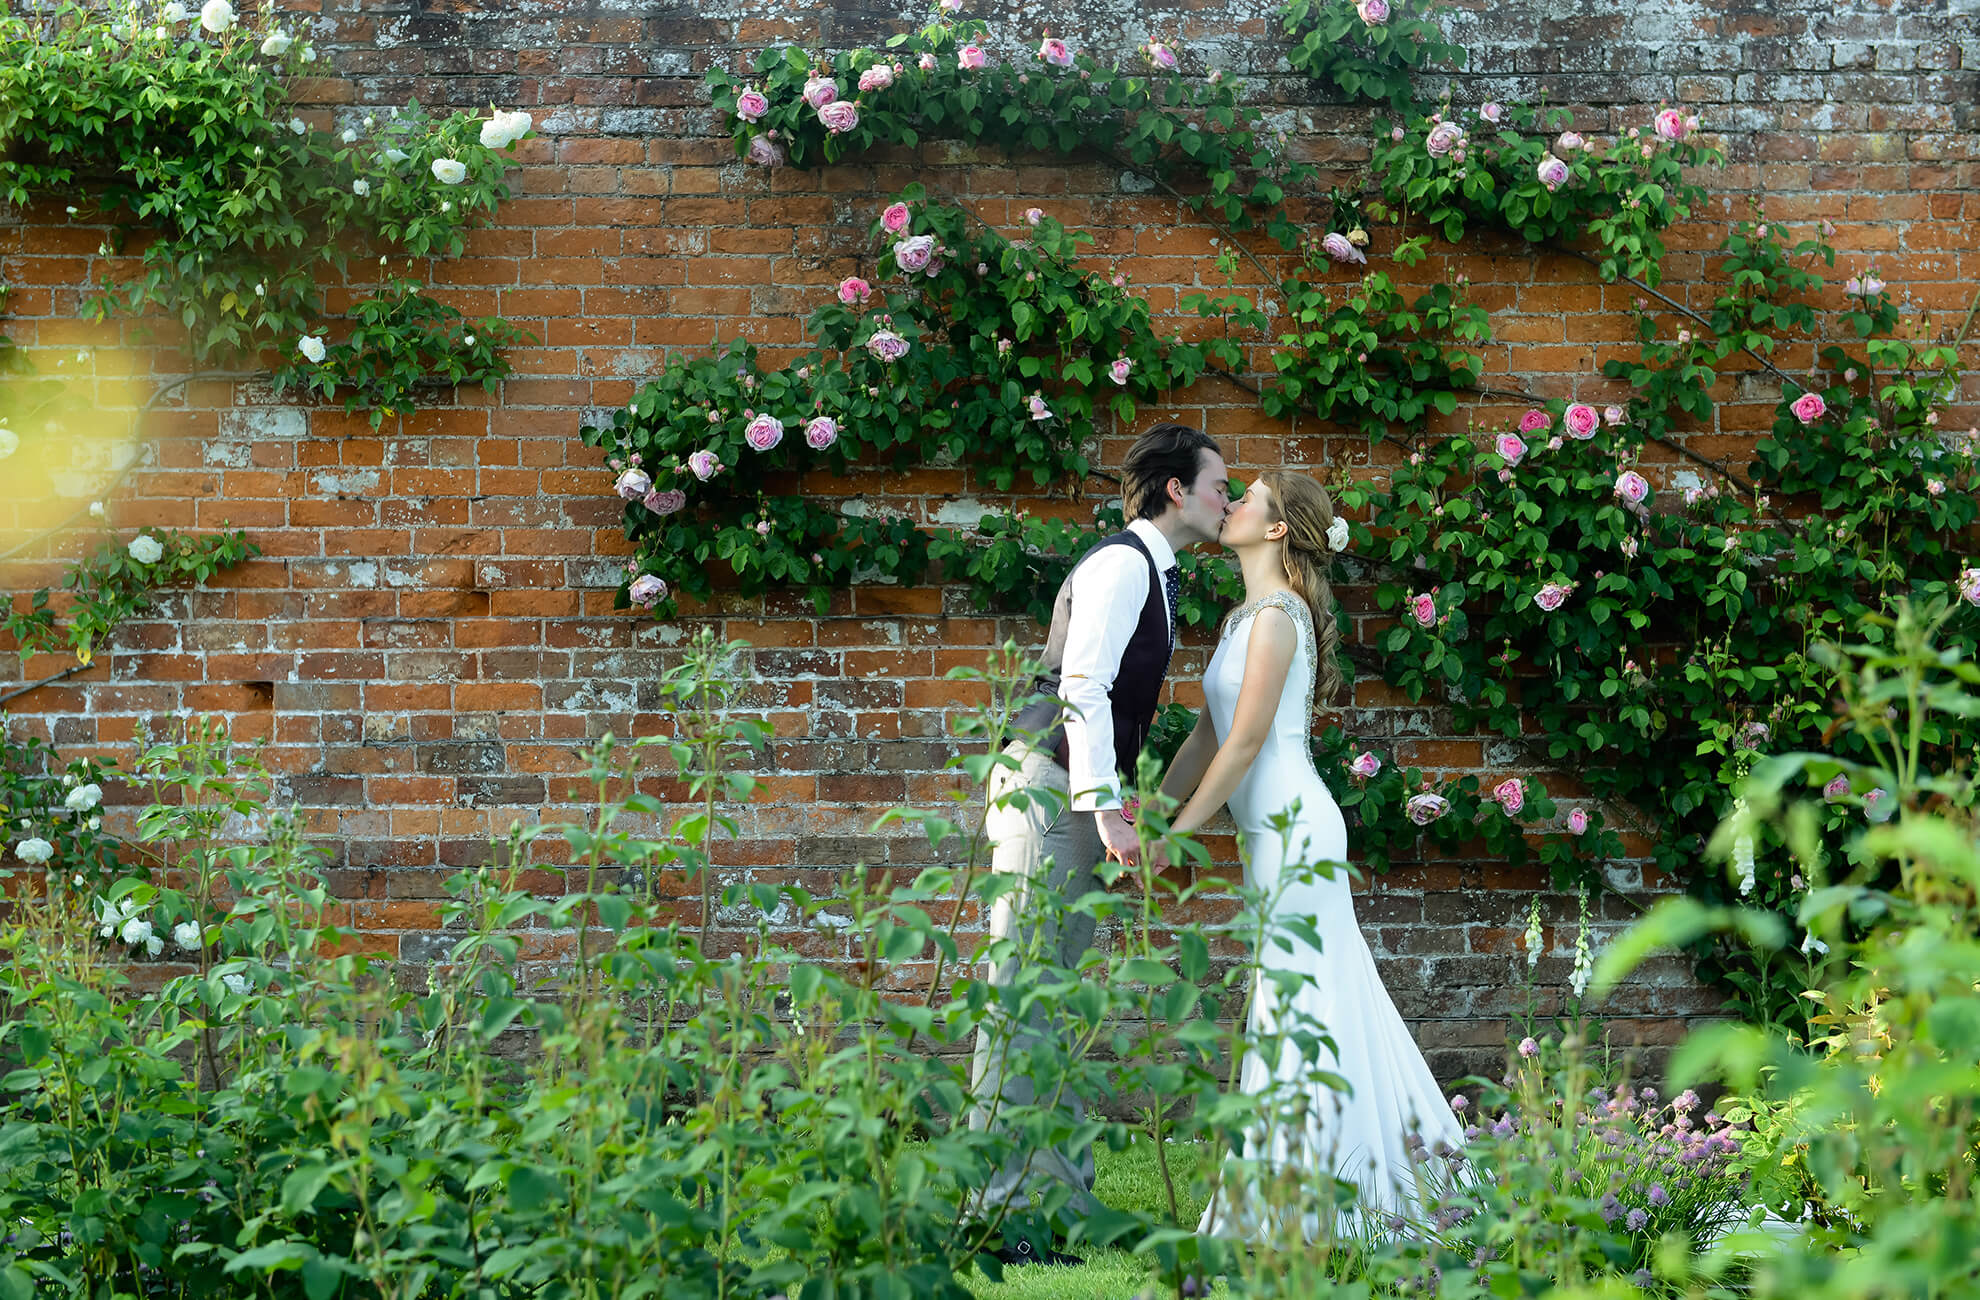 Newlyweds share a kiss away from guests in the Walled Gardens at Combermere Abbey wedding venue in Cheshire